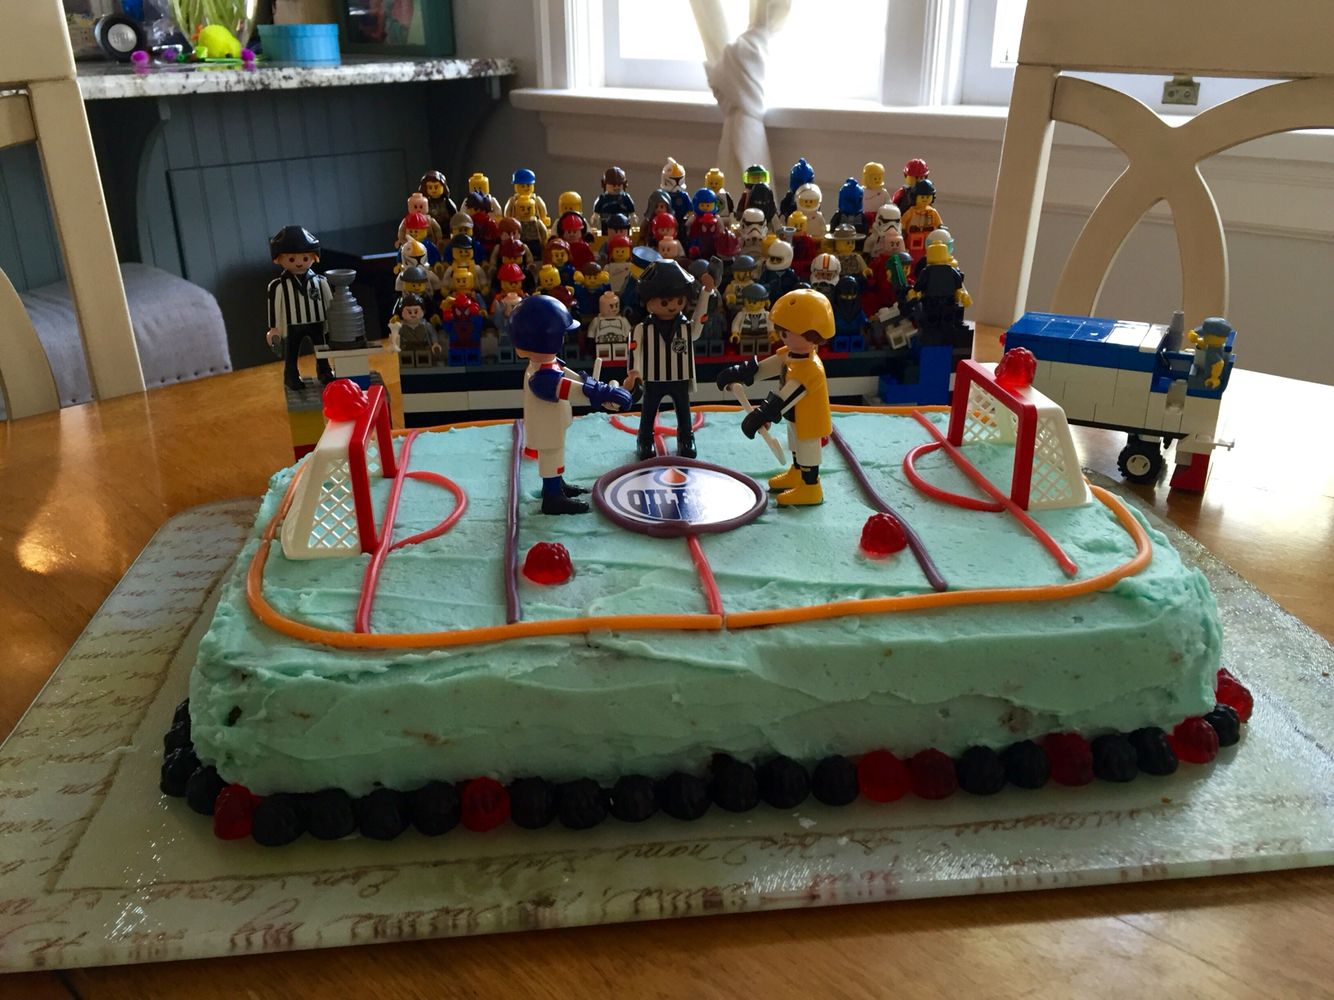 Oilers theme birthday cake! Hockey fans and all... #hockey #oilers ...